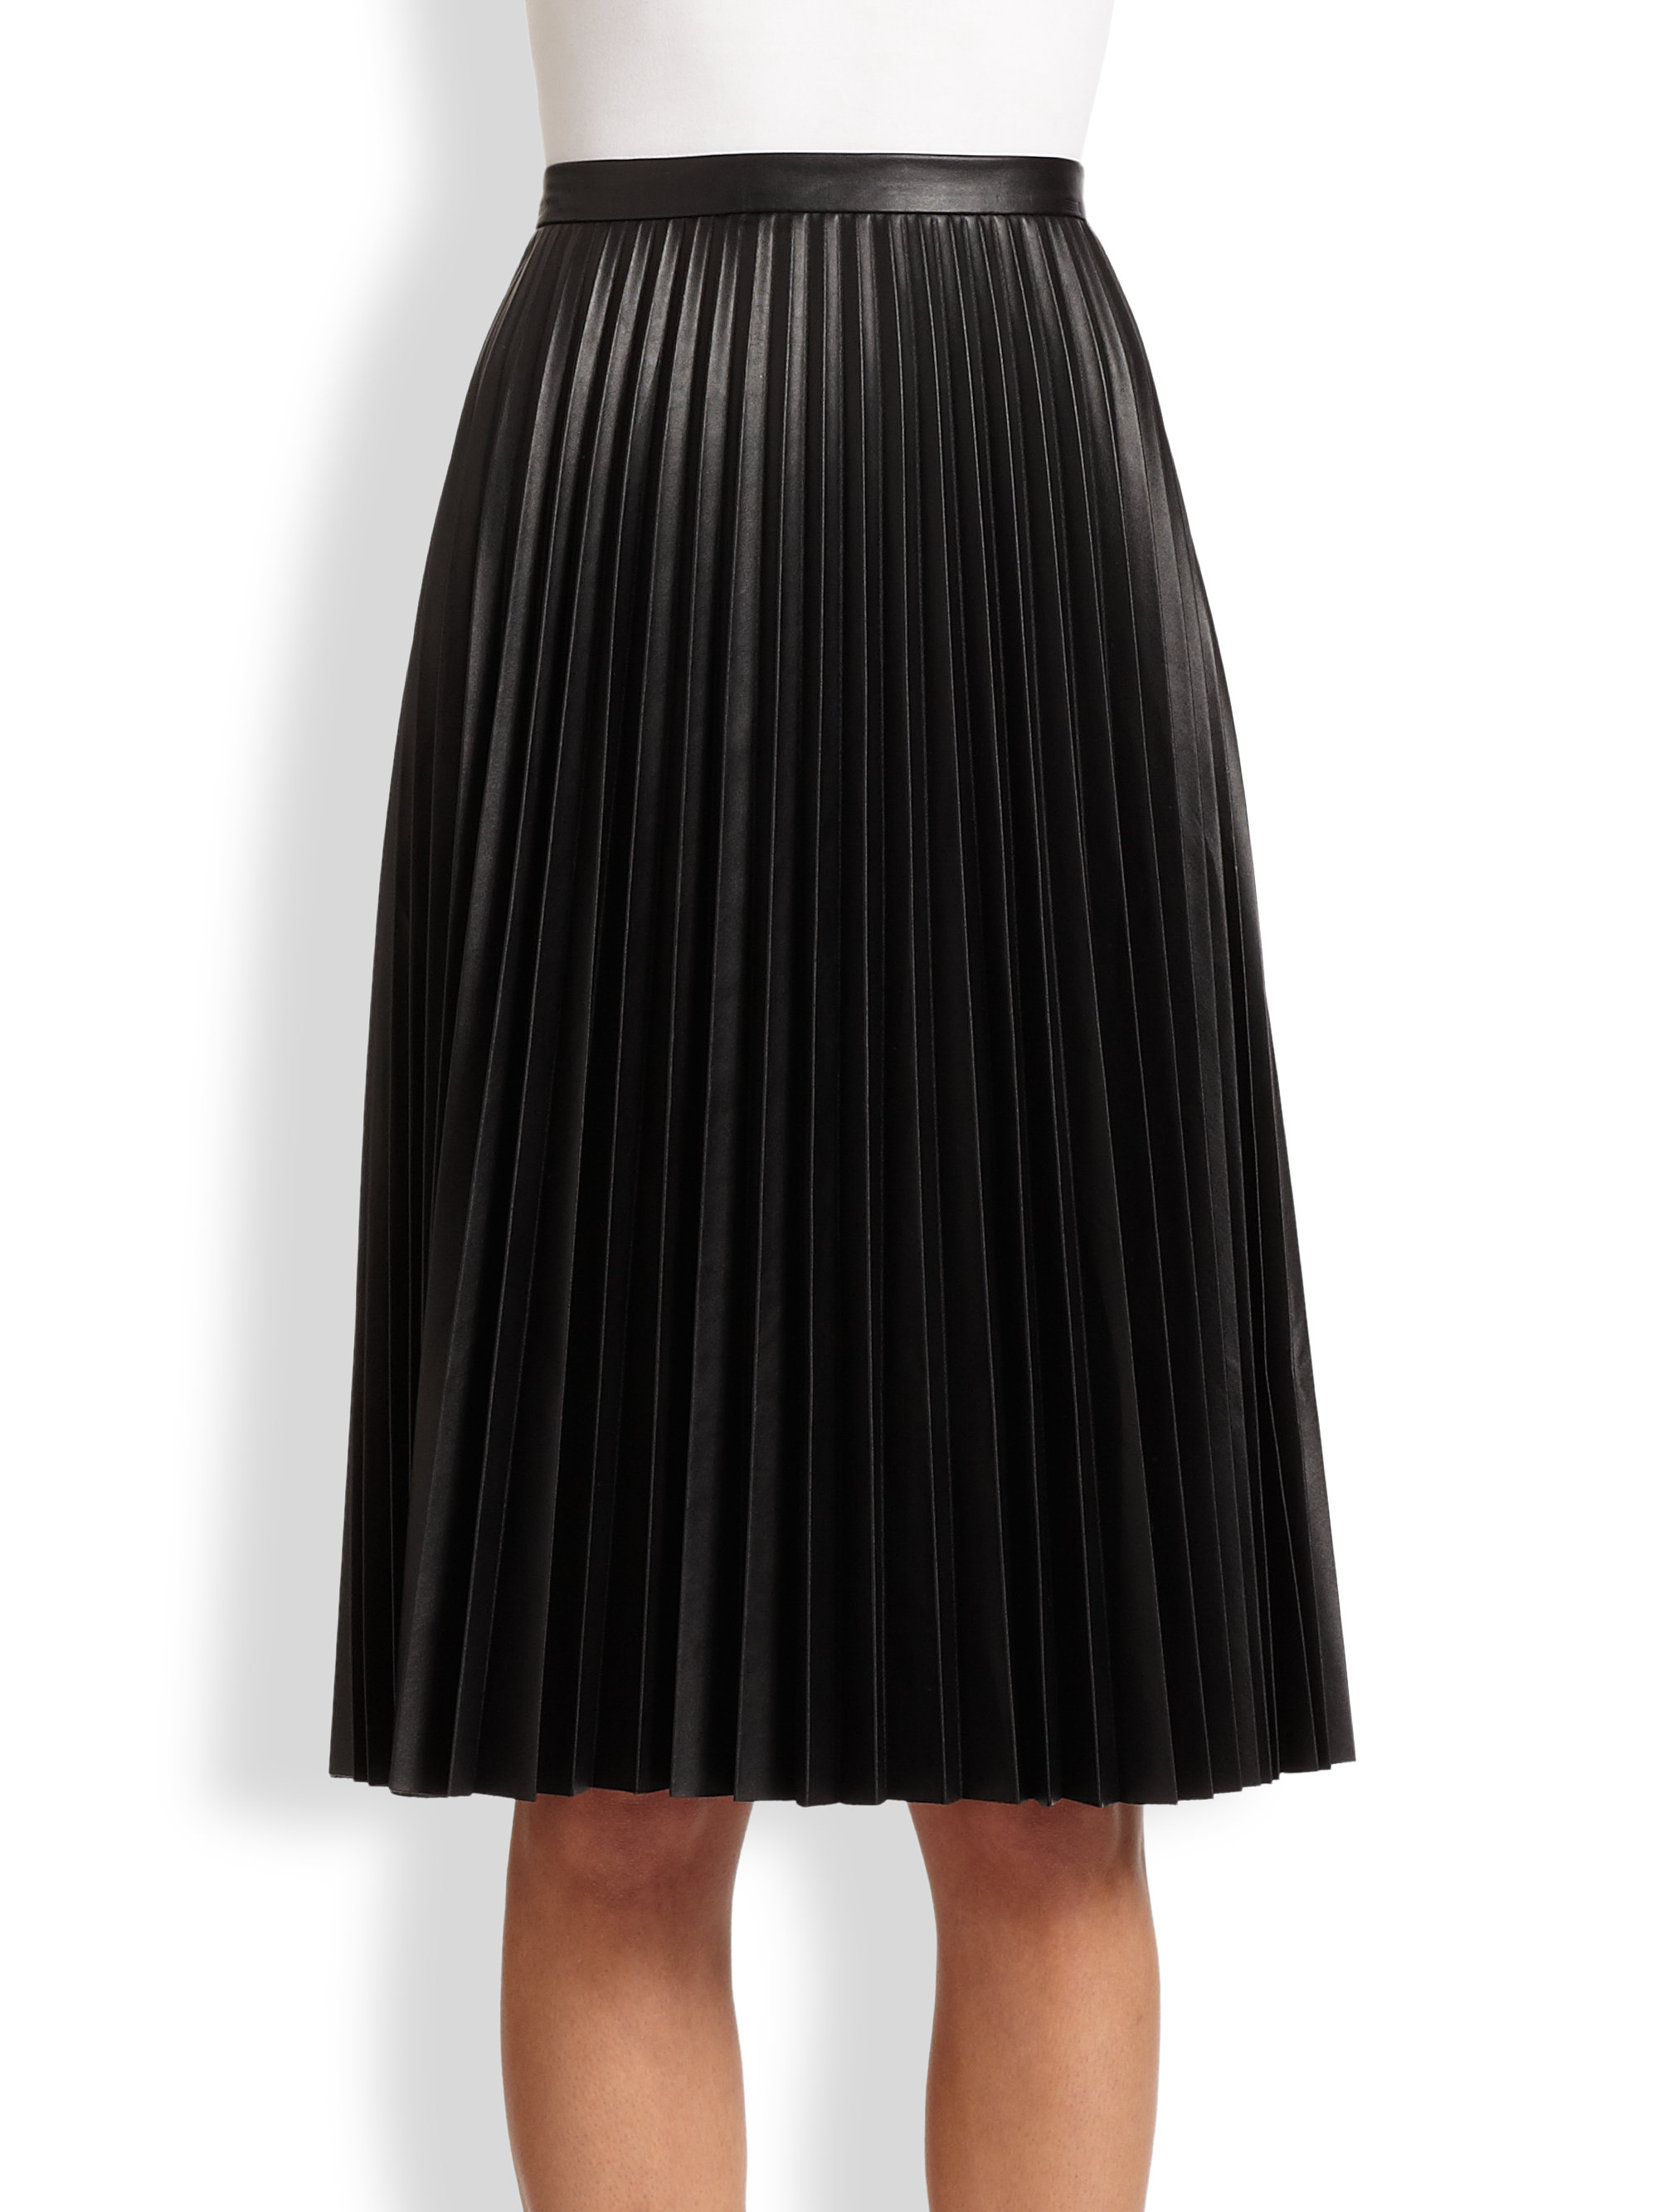 Bcbgmaxazria Elsa Faux Leather Pleated Skirt in Black | Lyst